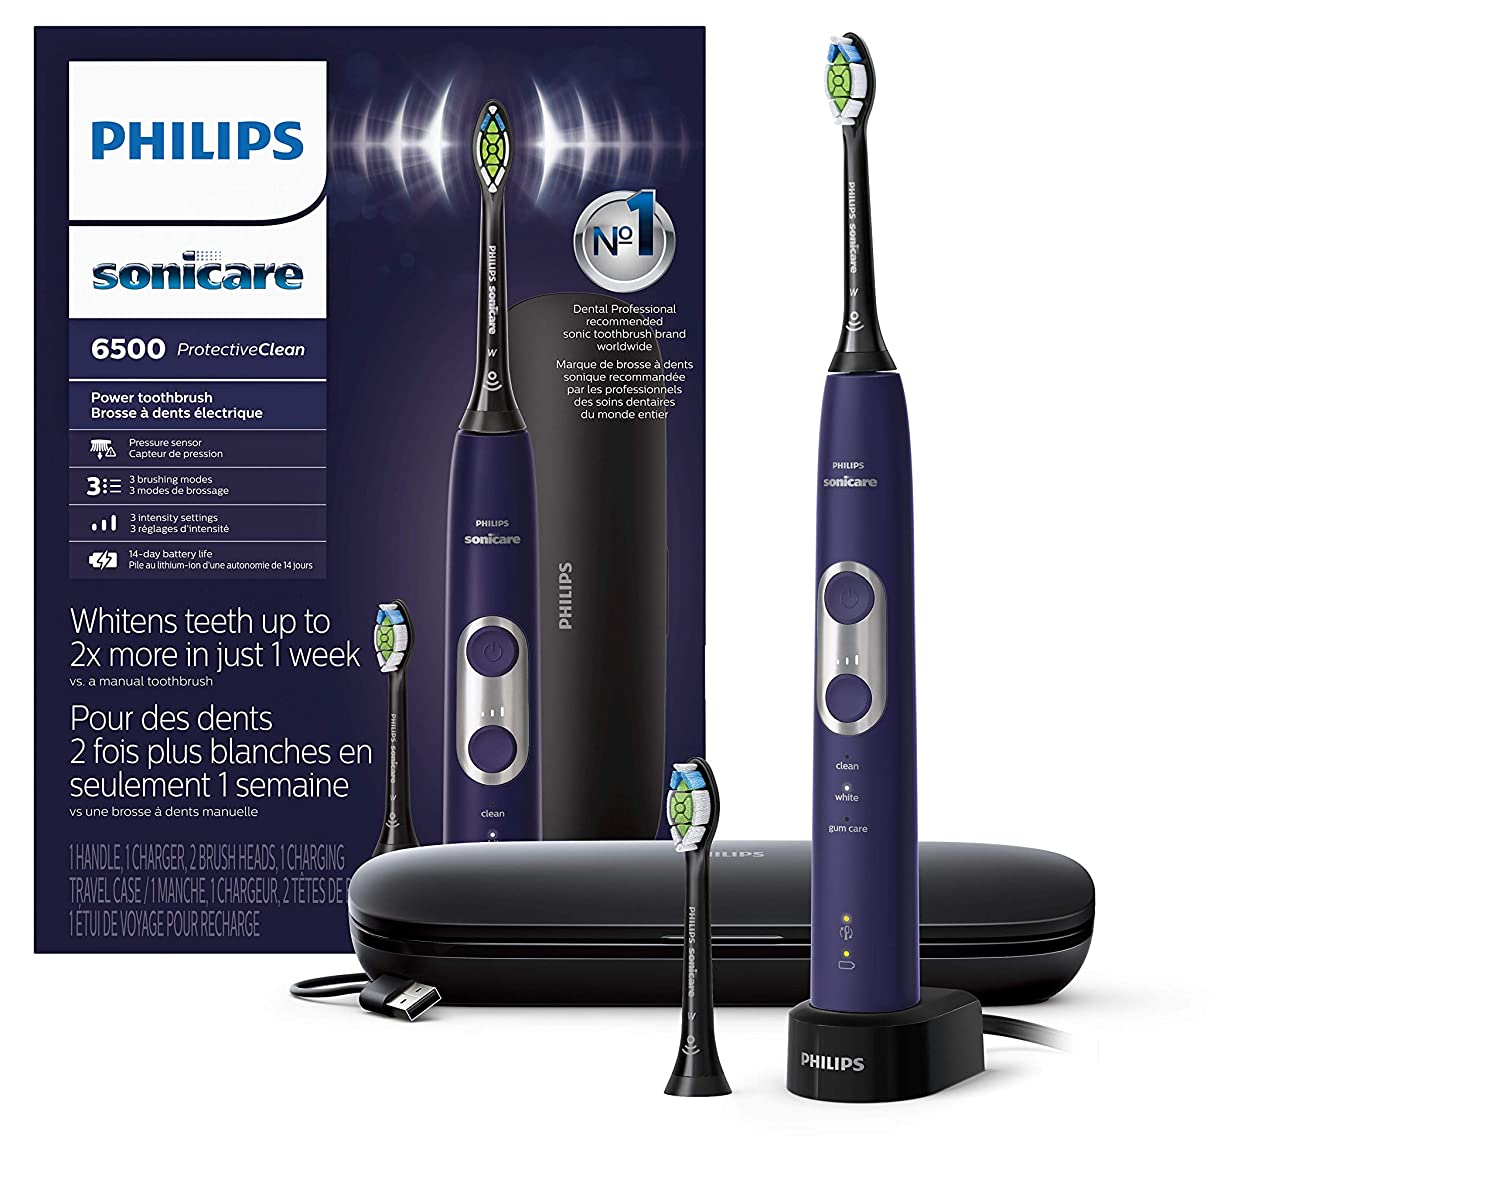 Philips Sonicare ProtectiveClean 6500 Rechargeable Electric Toothbrush with Charging Travel Case and Extra Brush Head, Deep Purple HX6462/09